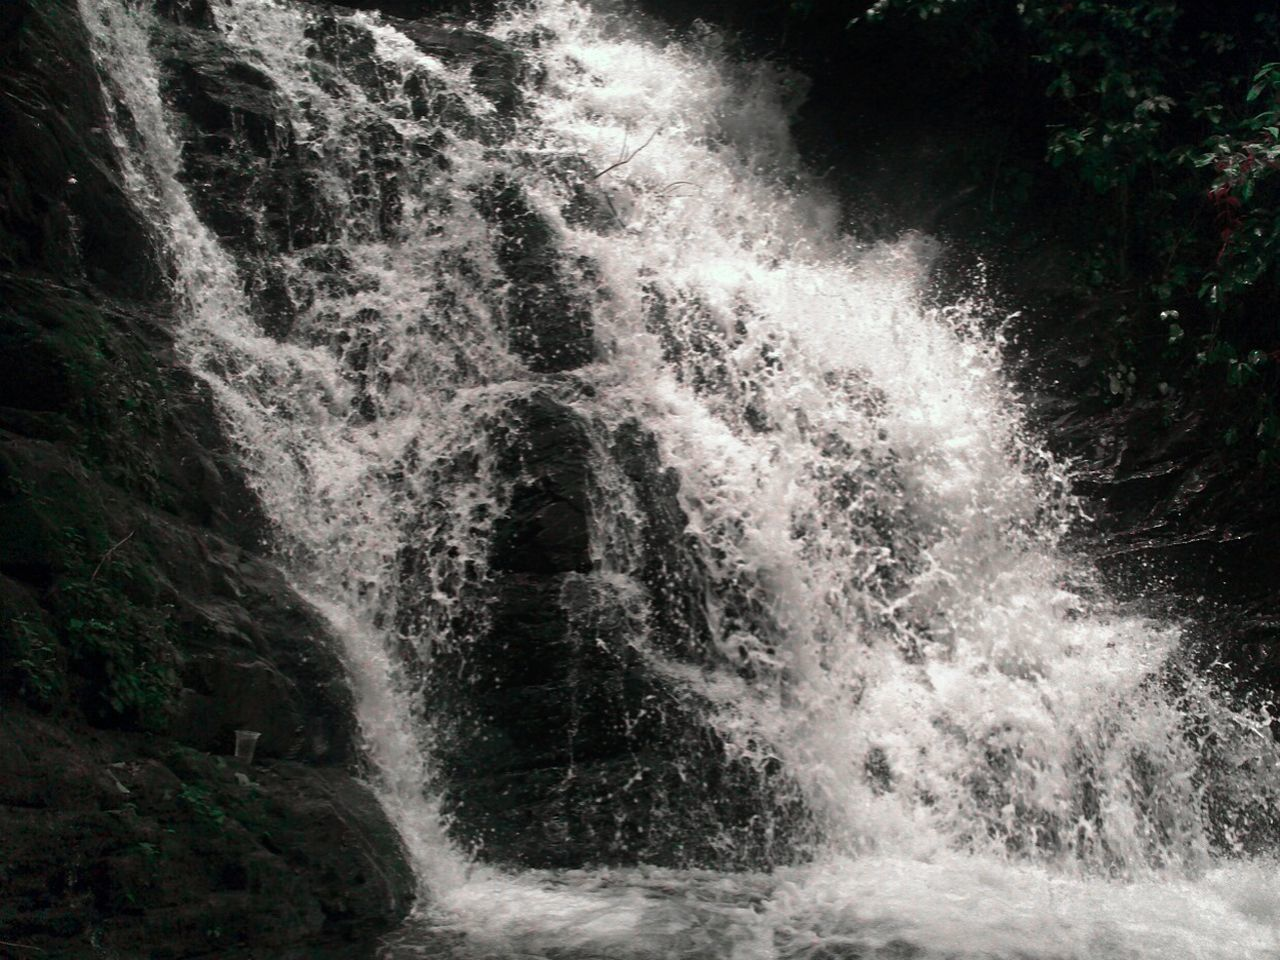 motion, water, waterfall, nature, power in nature, outdoors, beauty in nature, no people, scenics, day